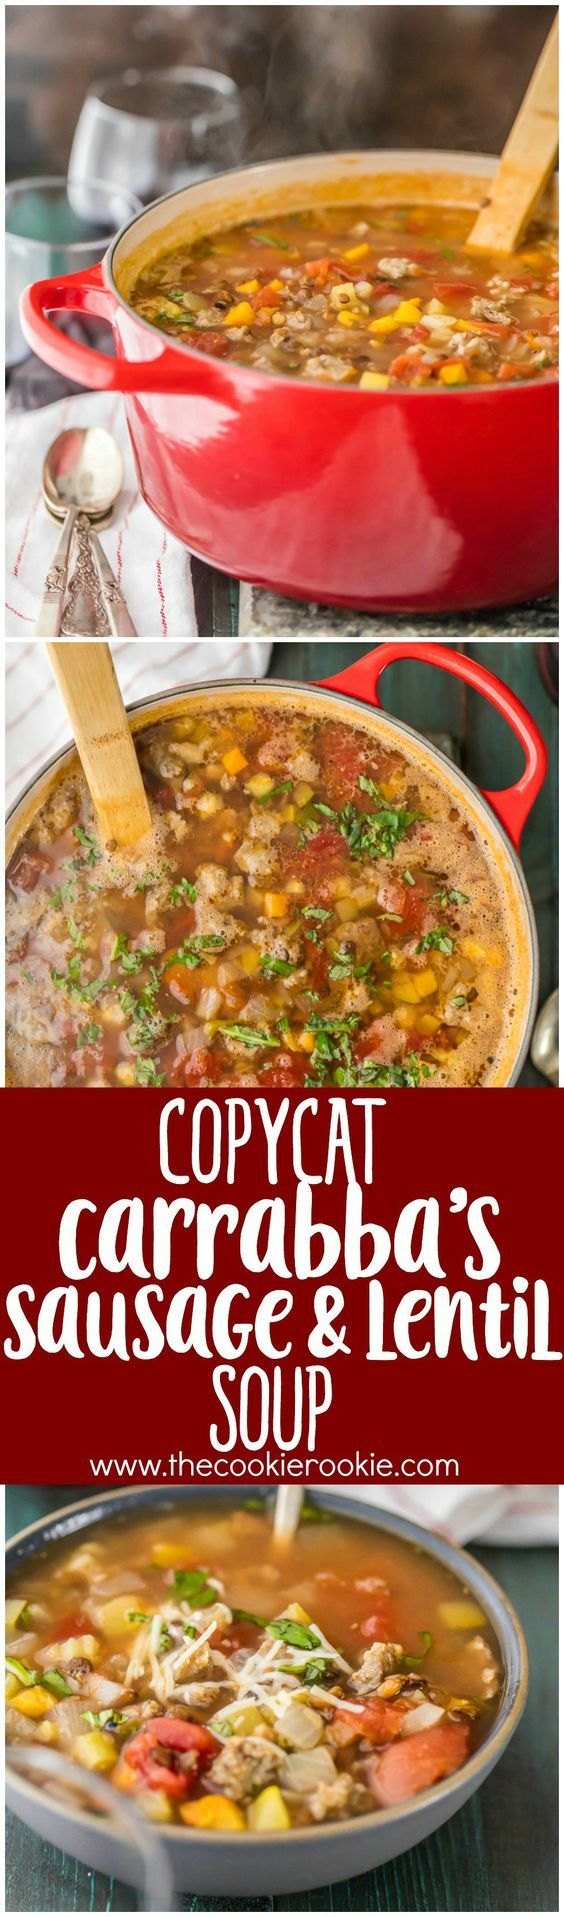 Copycat Carrabba's Sausage and Lentil Soup...your favorite restaurant comfort food made easy at home! This soup is such an EASY RECIPE and you can freeze it. -Perfect with Johnsonville Italian Sausage.